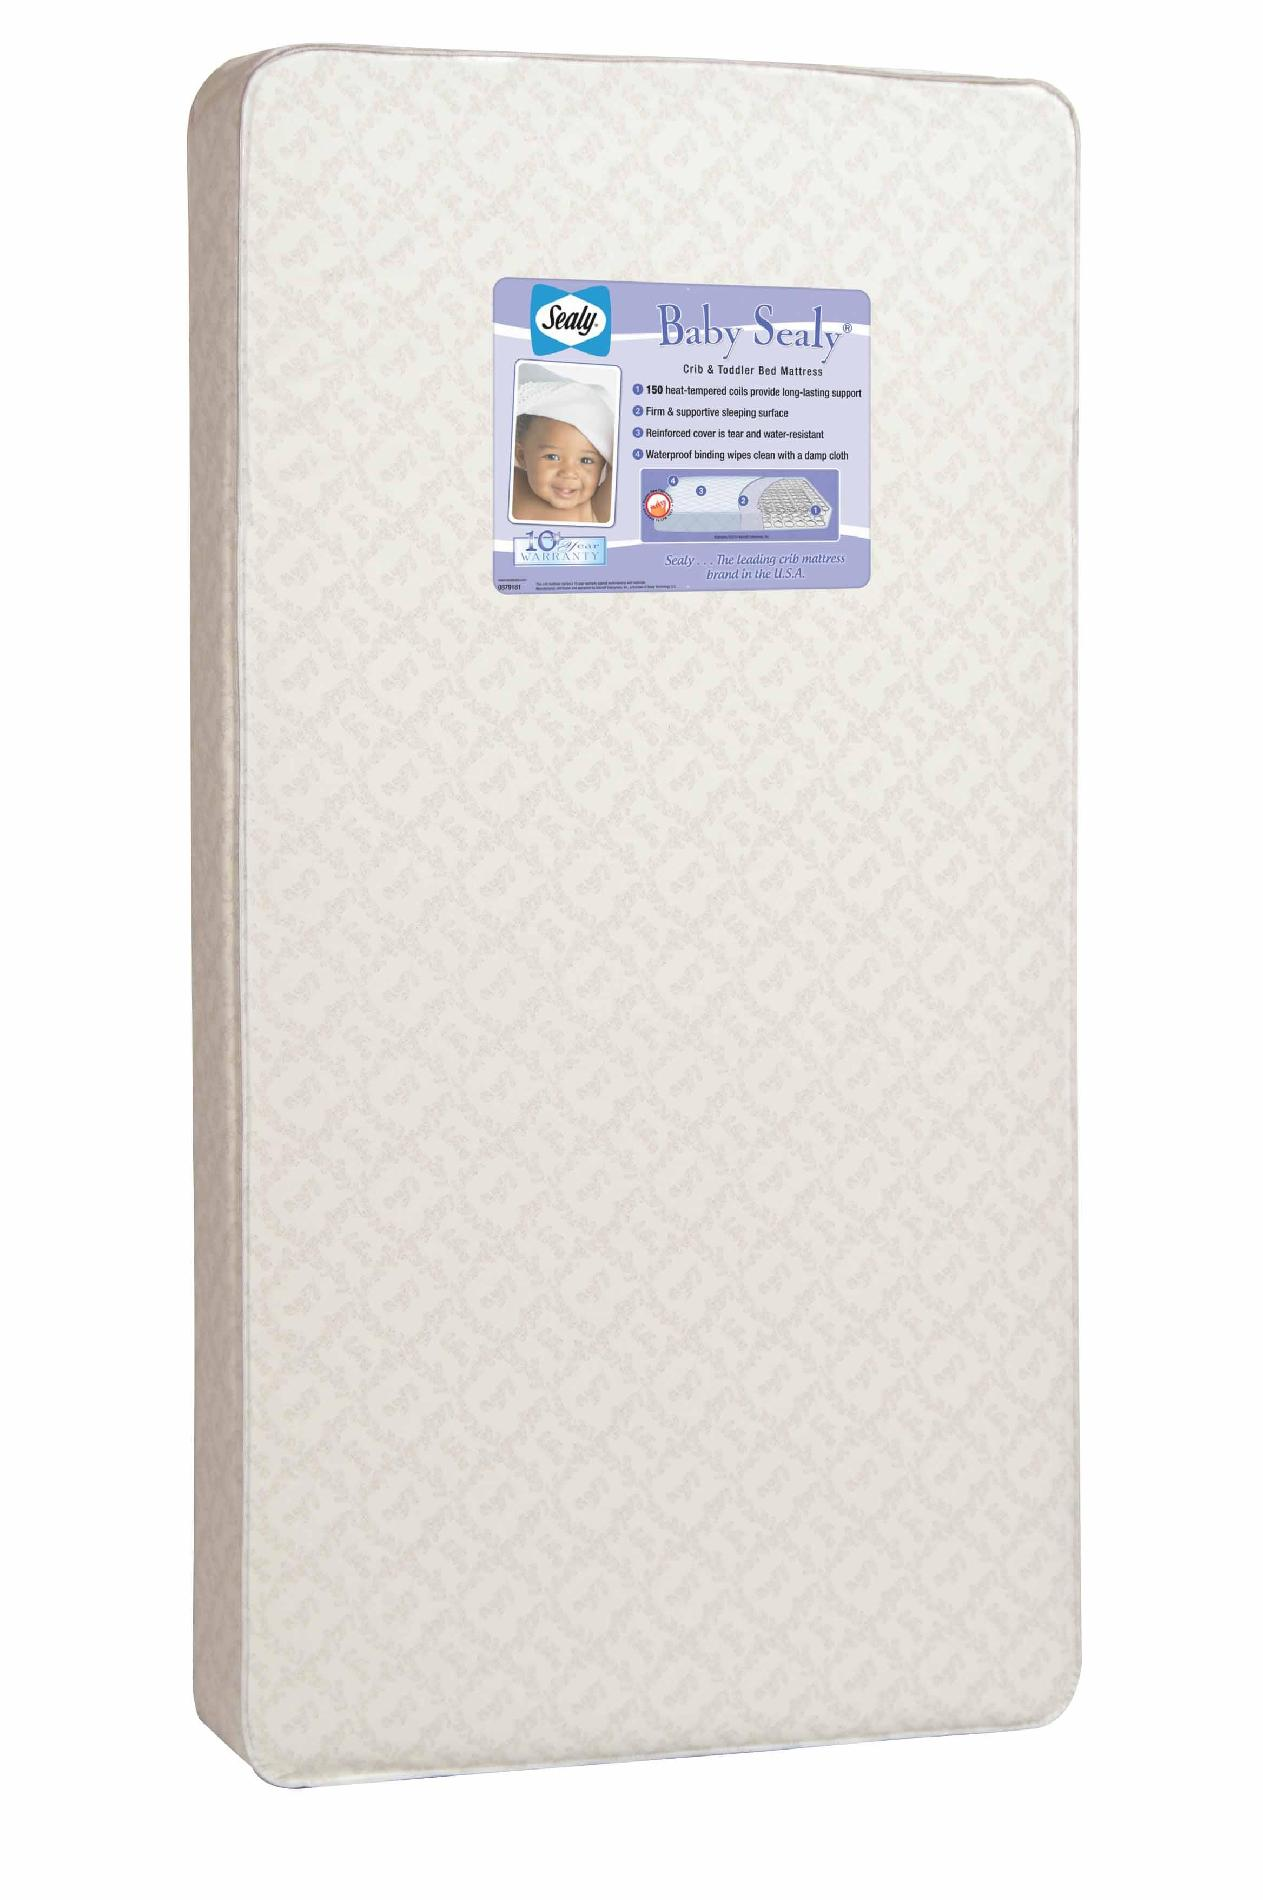 Baby Mattress Kmart Sealy 150 Coil Count Crib Mattress